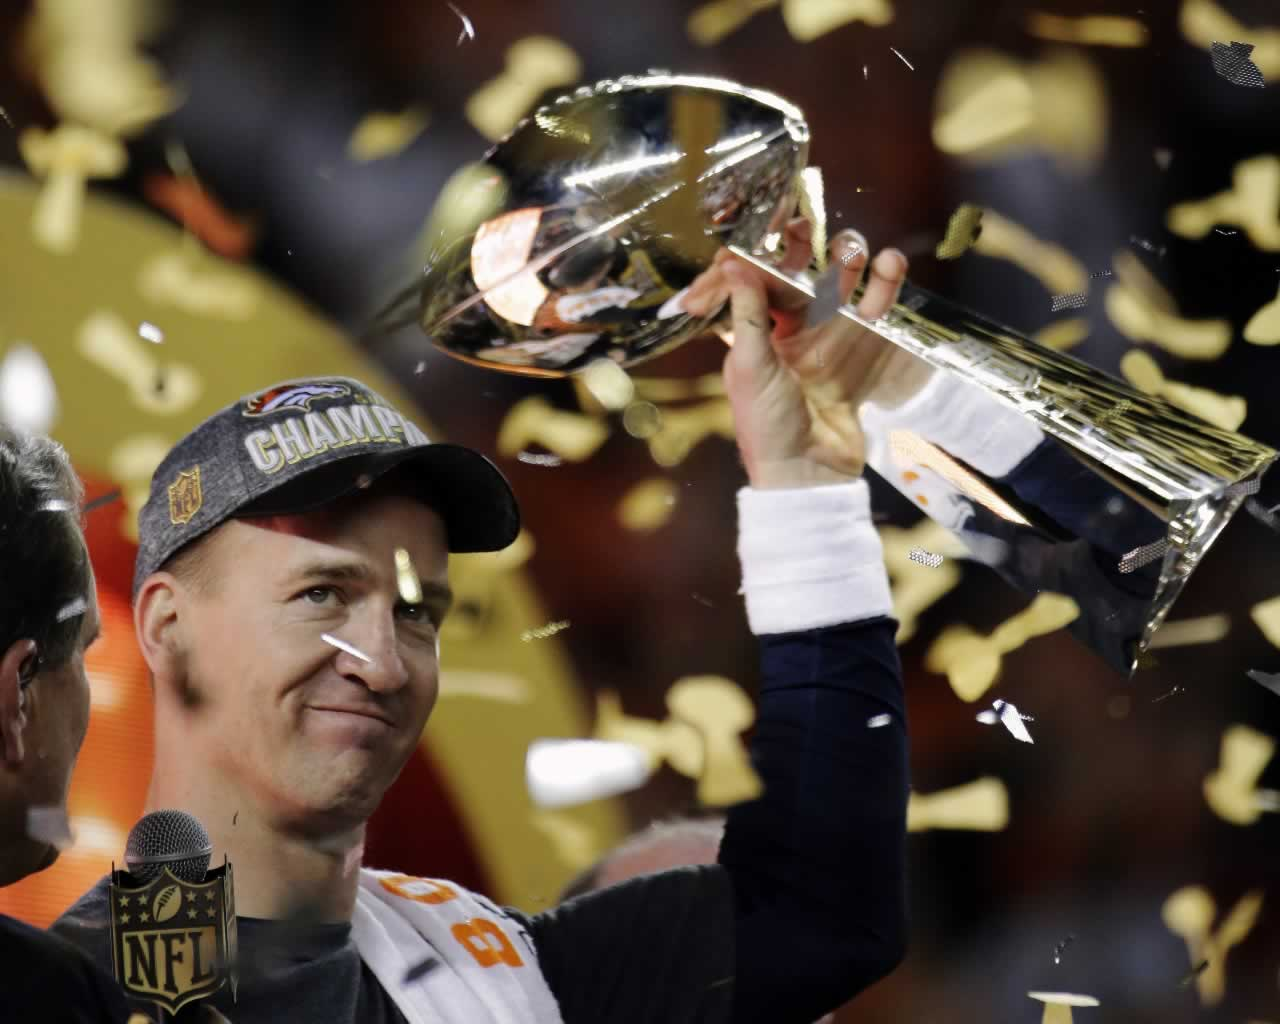 <div class='meta'><div class='origin-logo' data-origin='none'></div><span class='caption-text' data-credit='AP Photo/Julie Jacobson'>Broncos' Peyton Manning holds the Vince Lombardi Trophy after the NFL Super Bowl 50 football game Sunday, Feb. 7, 2016, in Santa Clara, Calif.</span></div>